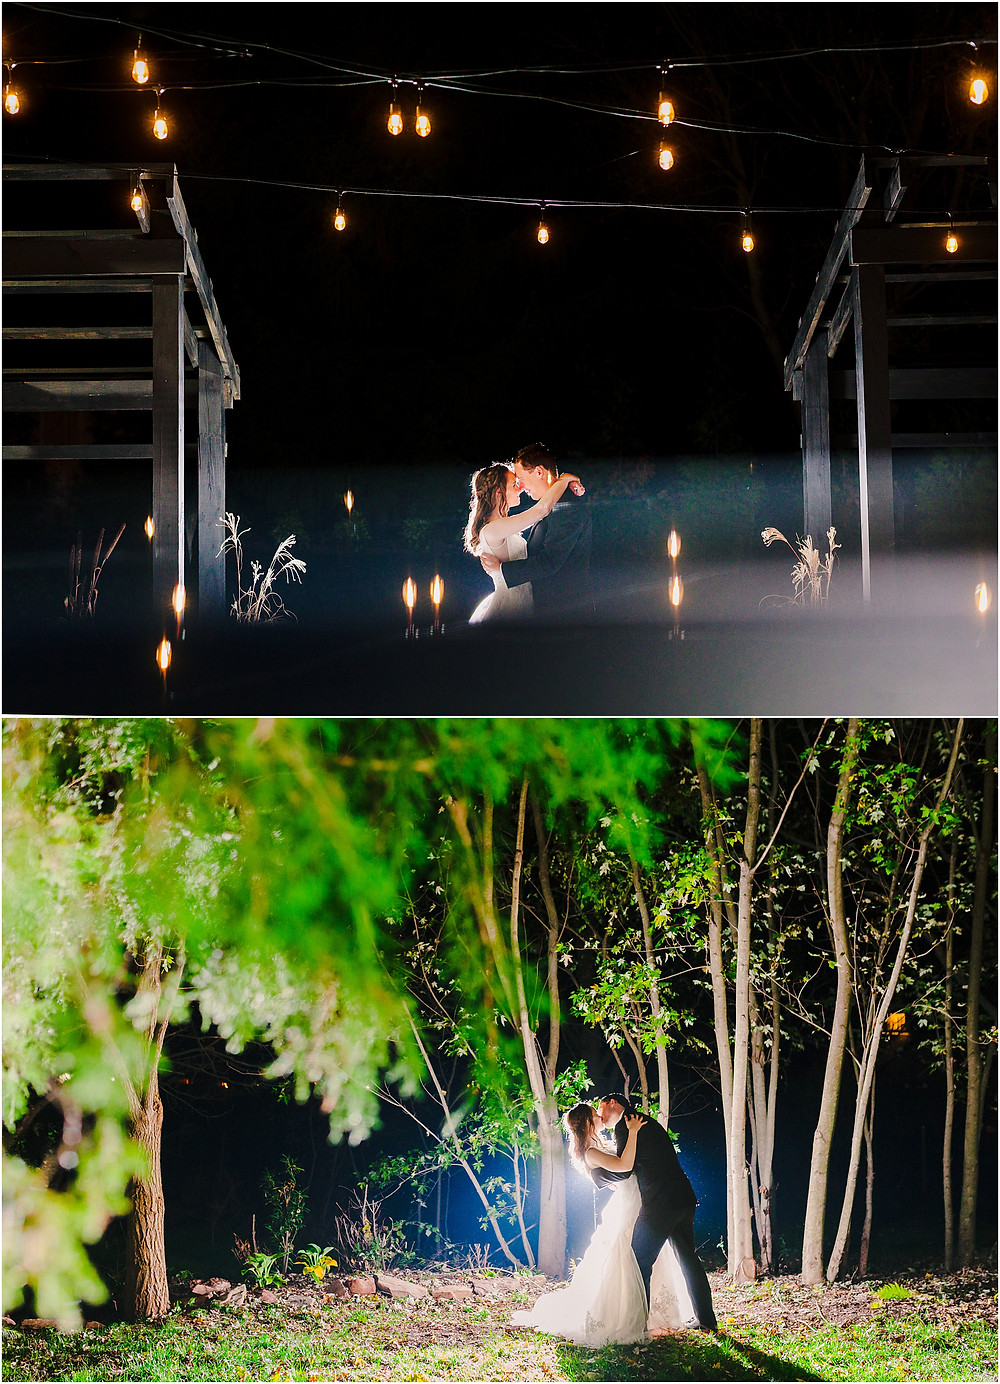 Night portraits at the tannery barn. Baltimore wedding photographer